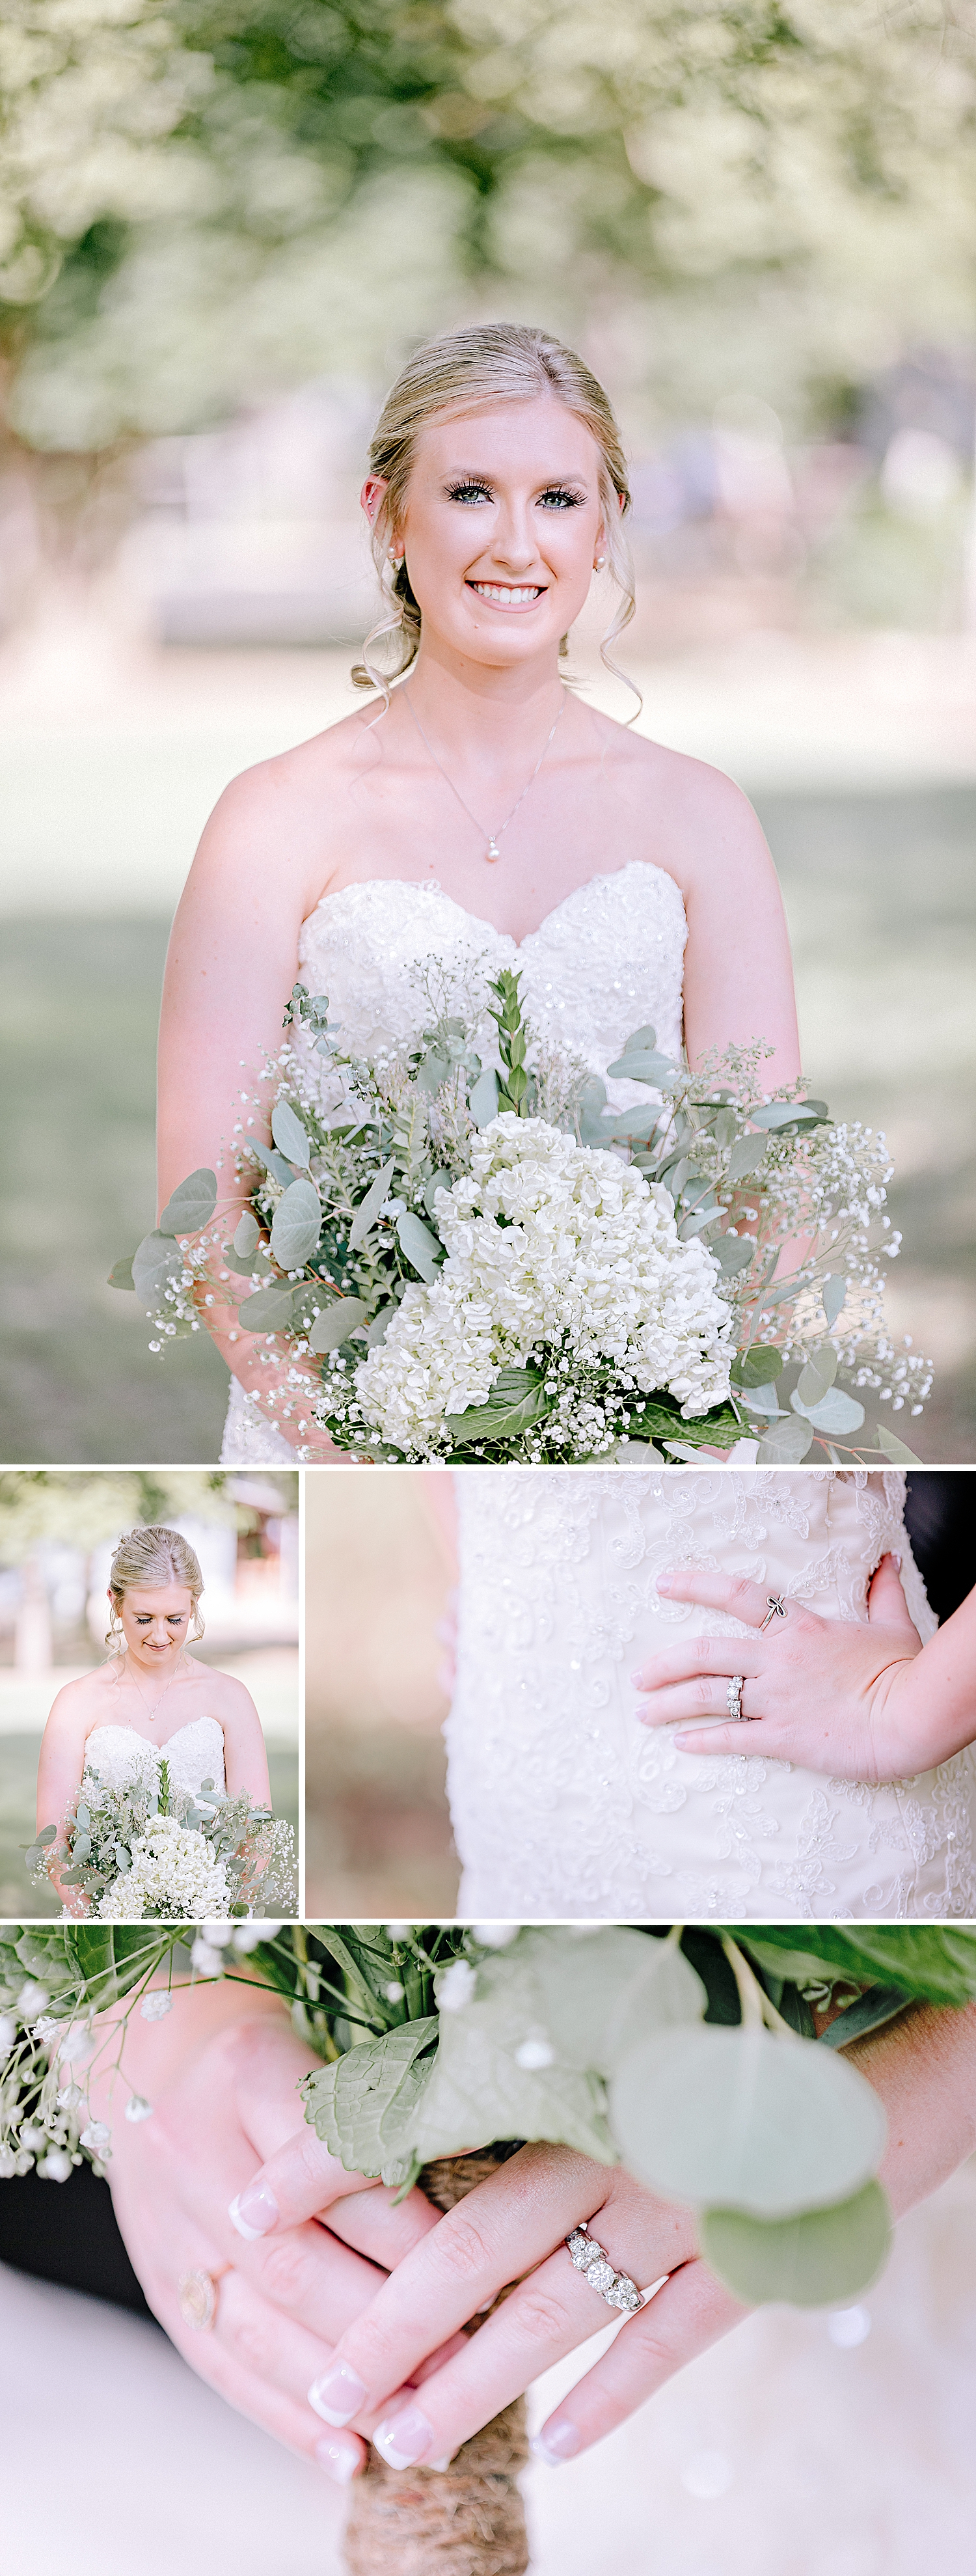 Carly-Barton-Photography-Bridal-Photos-Gruene-Rustic-New-Braunfels-Wedding-Photographer_0016.jpg